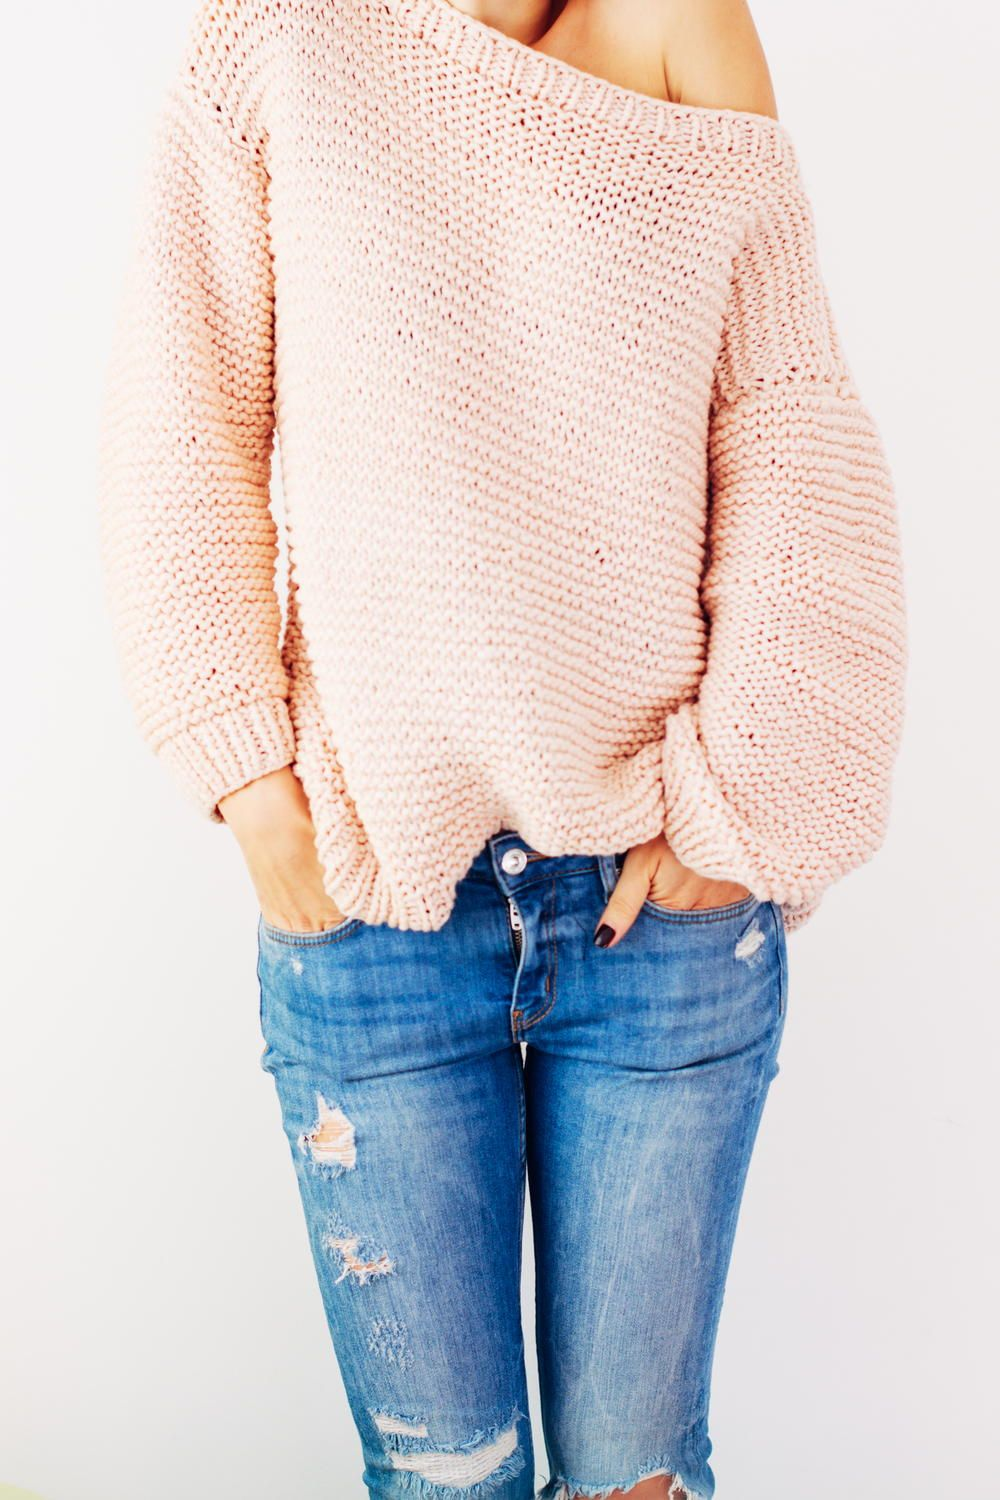 f3d8df88f Peachy Keen Oversize Knitted Sweater